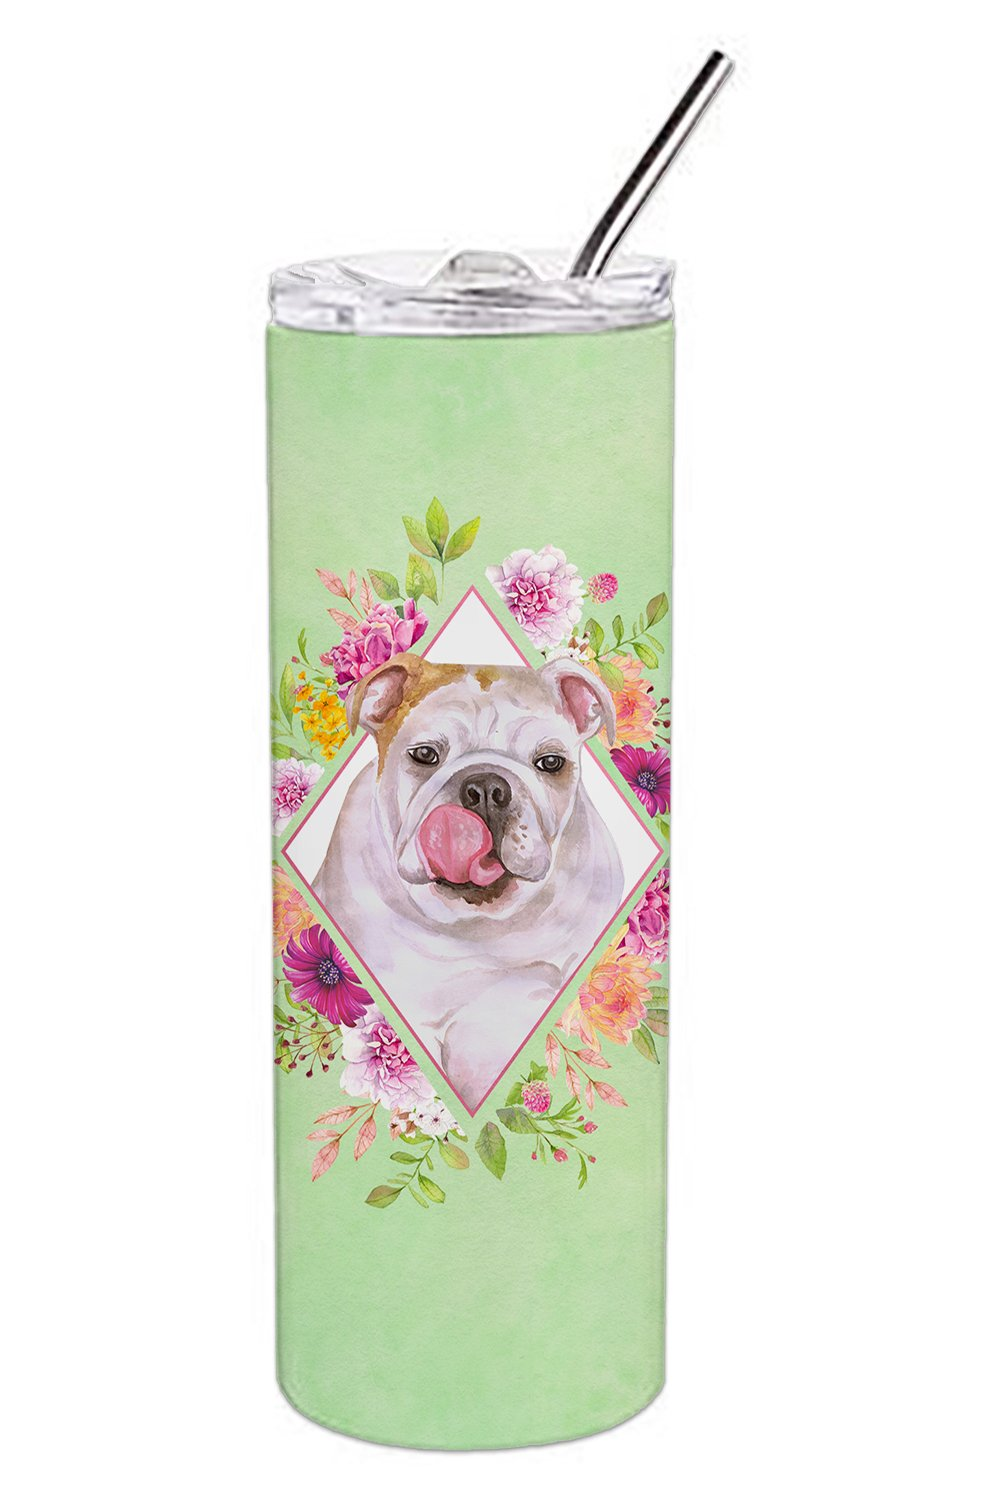 English Bulldog Green Flowers Double Walled Stainless Steel 20 oz Skinny Tumbler CK4300TBL20 by Caroline's Treasures